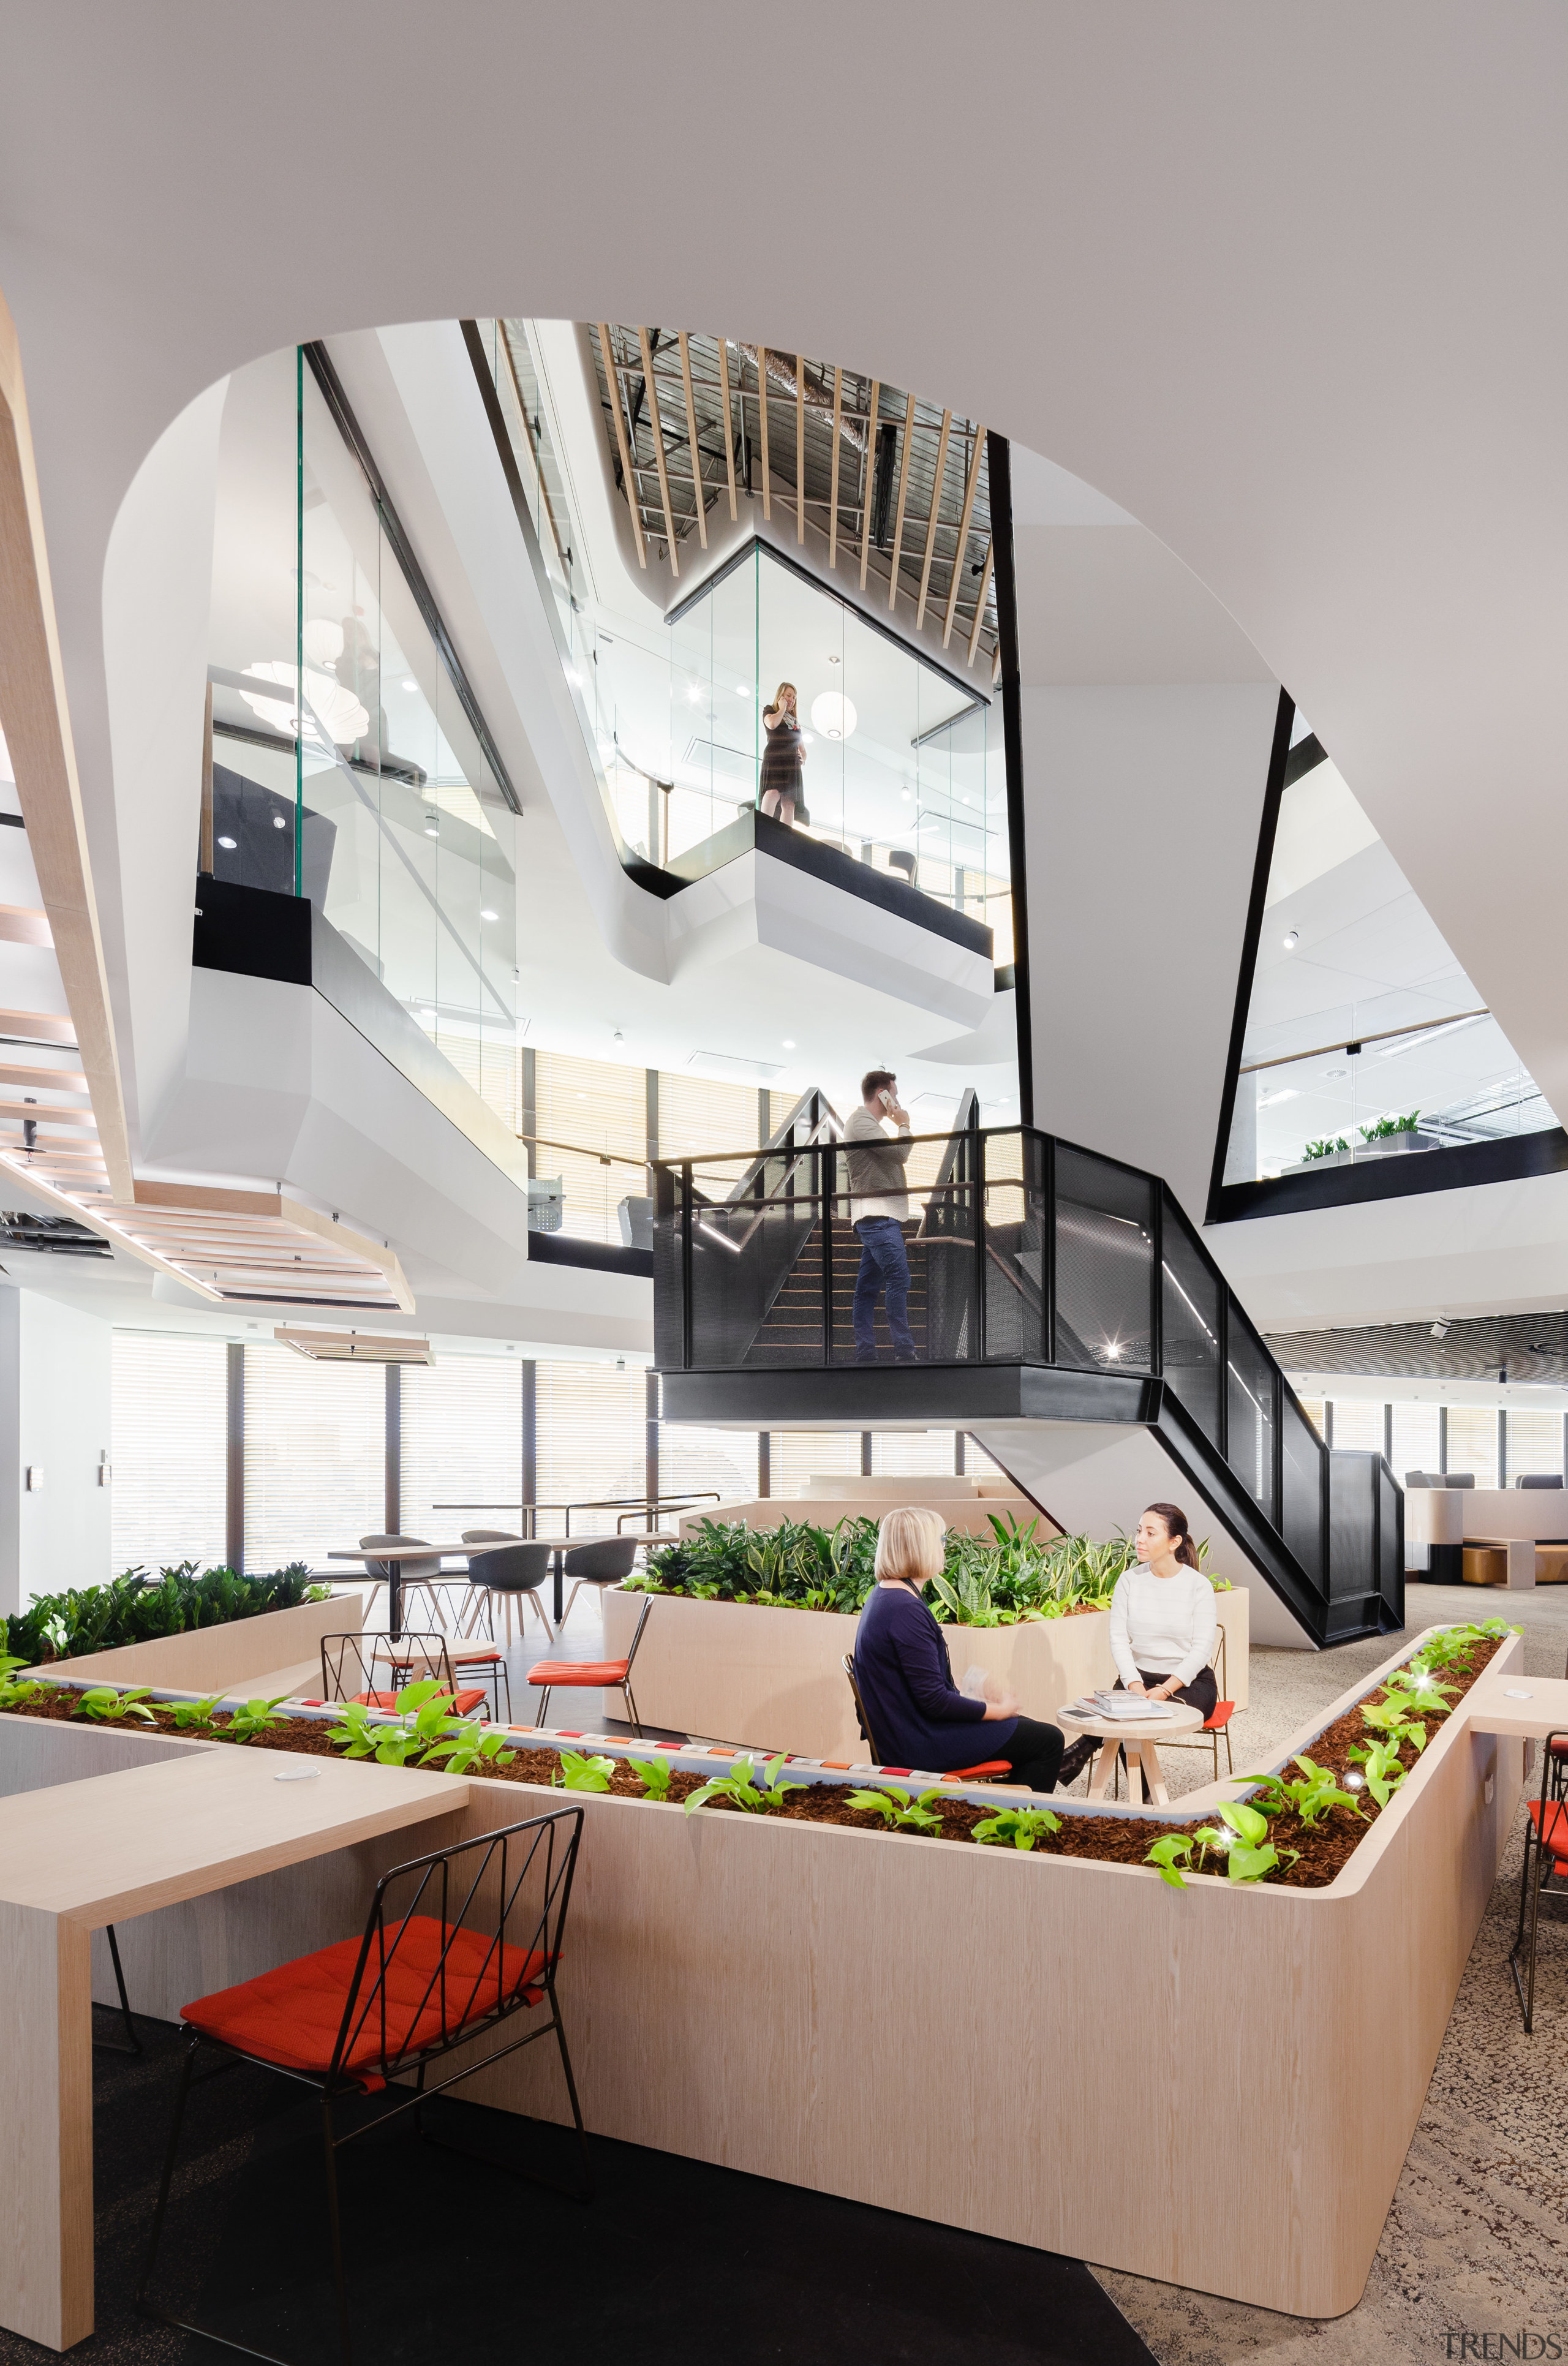 Mirvacs Sydney head office has a strong sculptural apartment, architecture, daylighting, house, interior design, mixed use, product design, gray